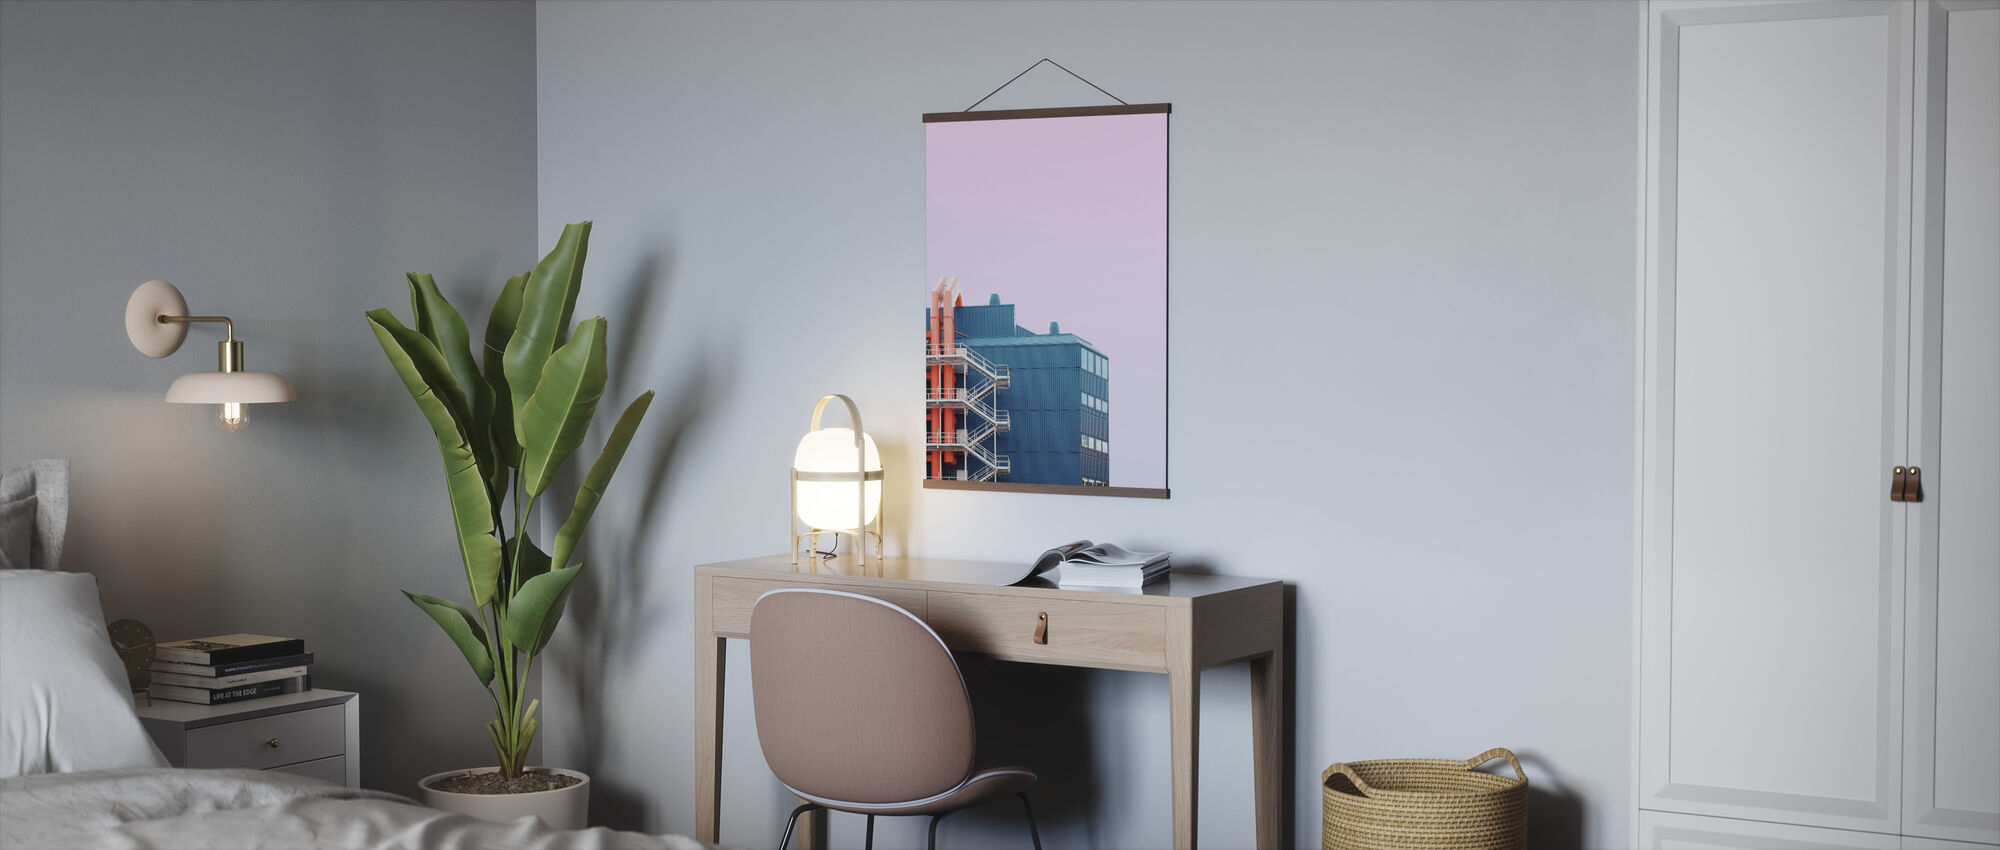 Industrial Pipe Building - Poster - Office